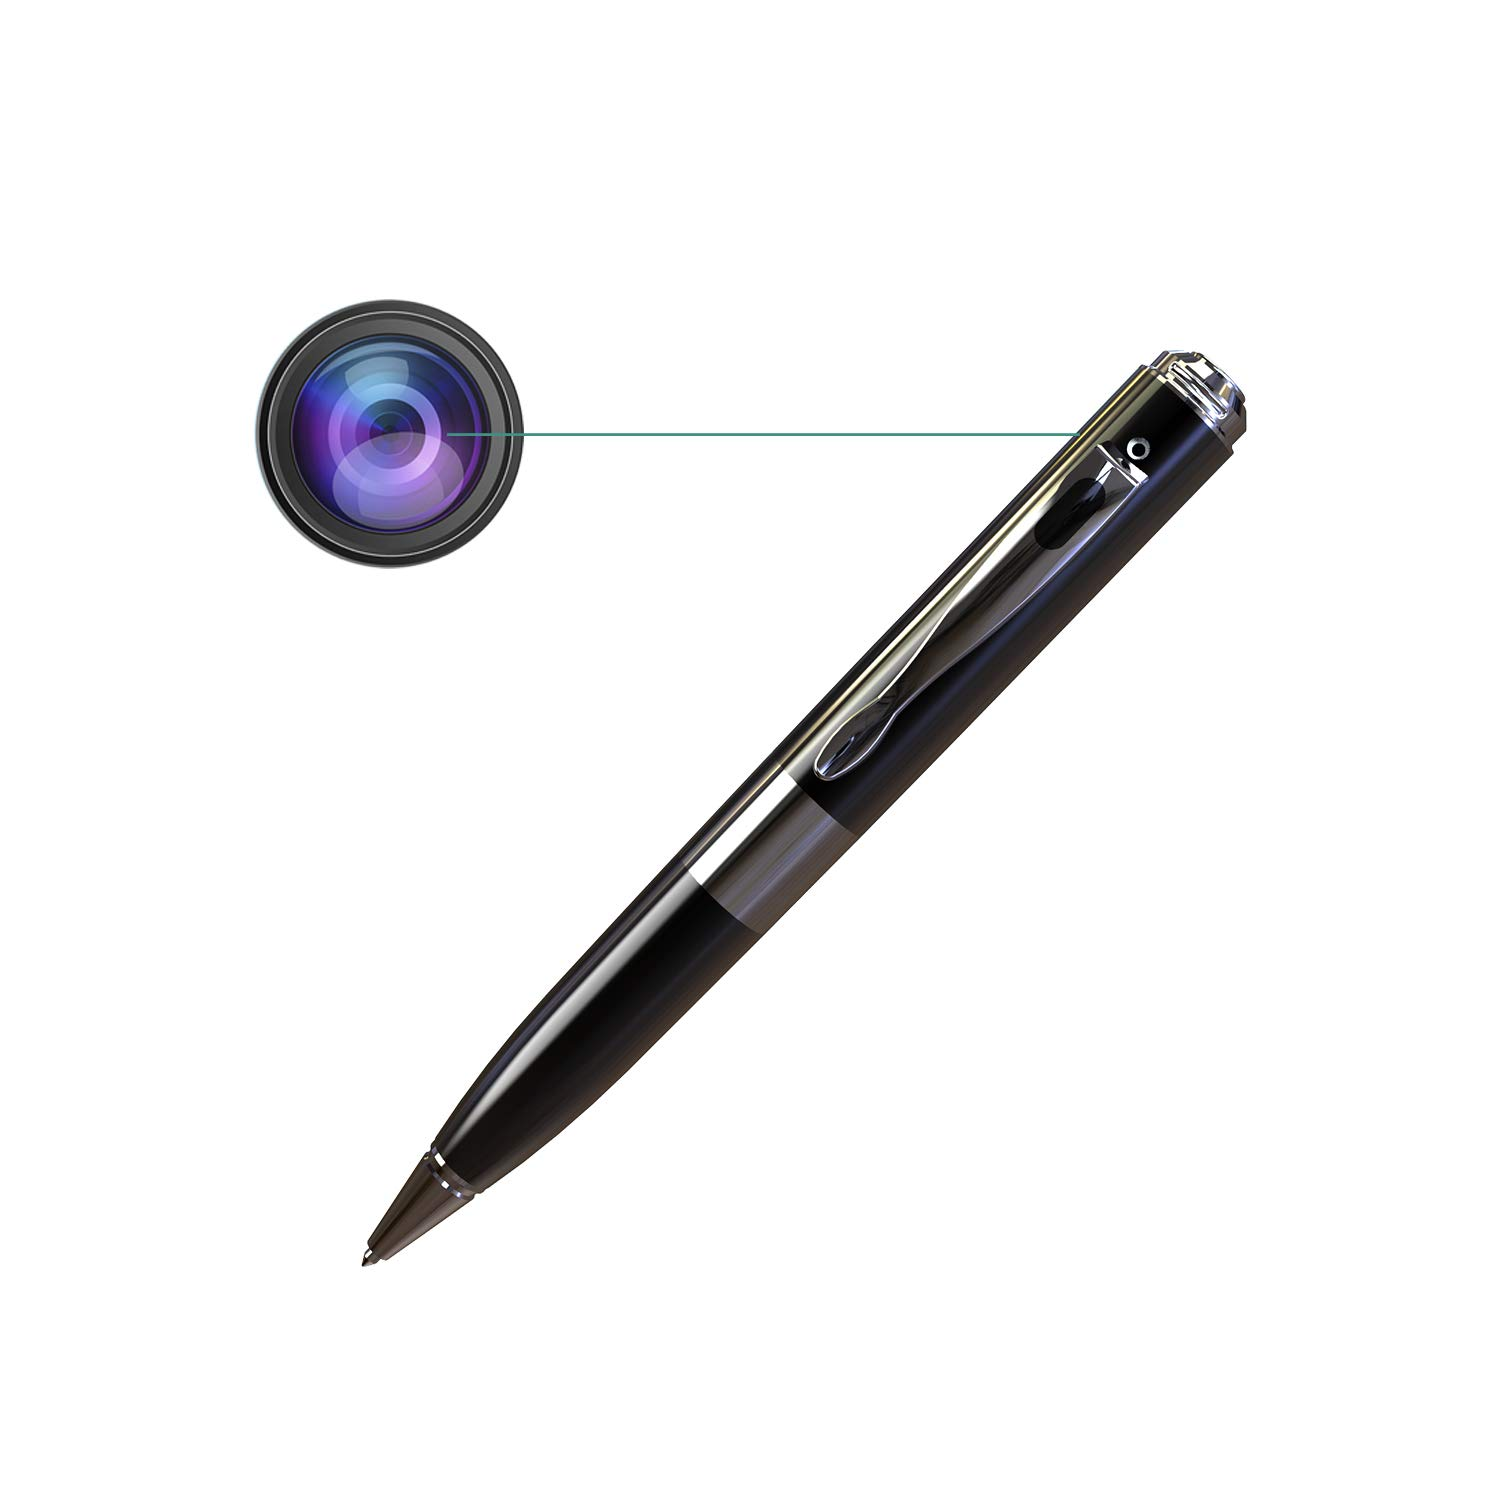 Hidden Camera,PORTOCAM POT21 FHD 1080P Spy Pen Camera Recorder Portable Security Video Recorder w Night Vision Video Only